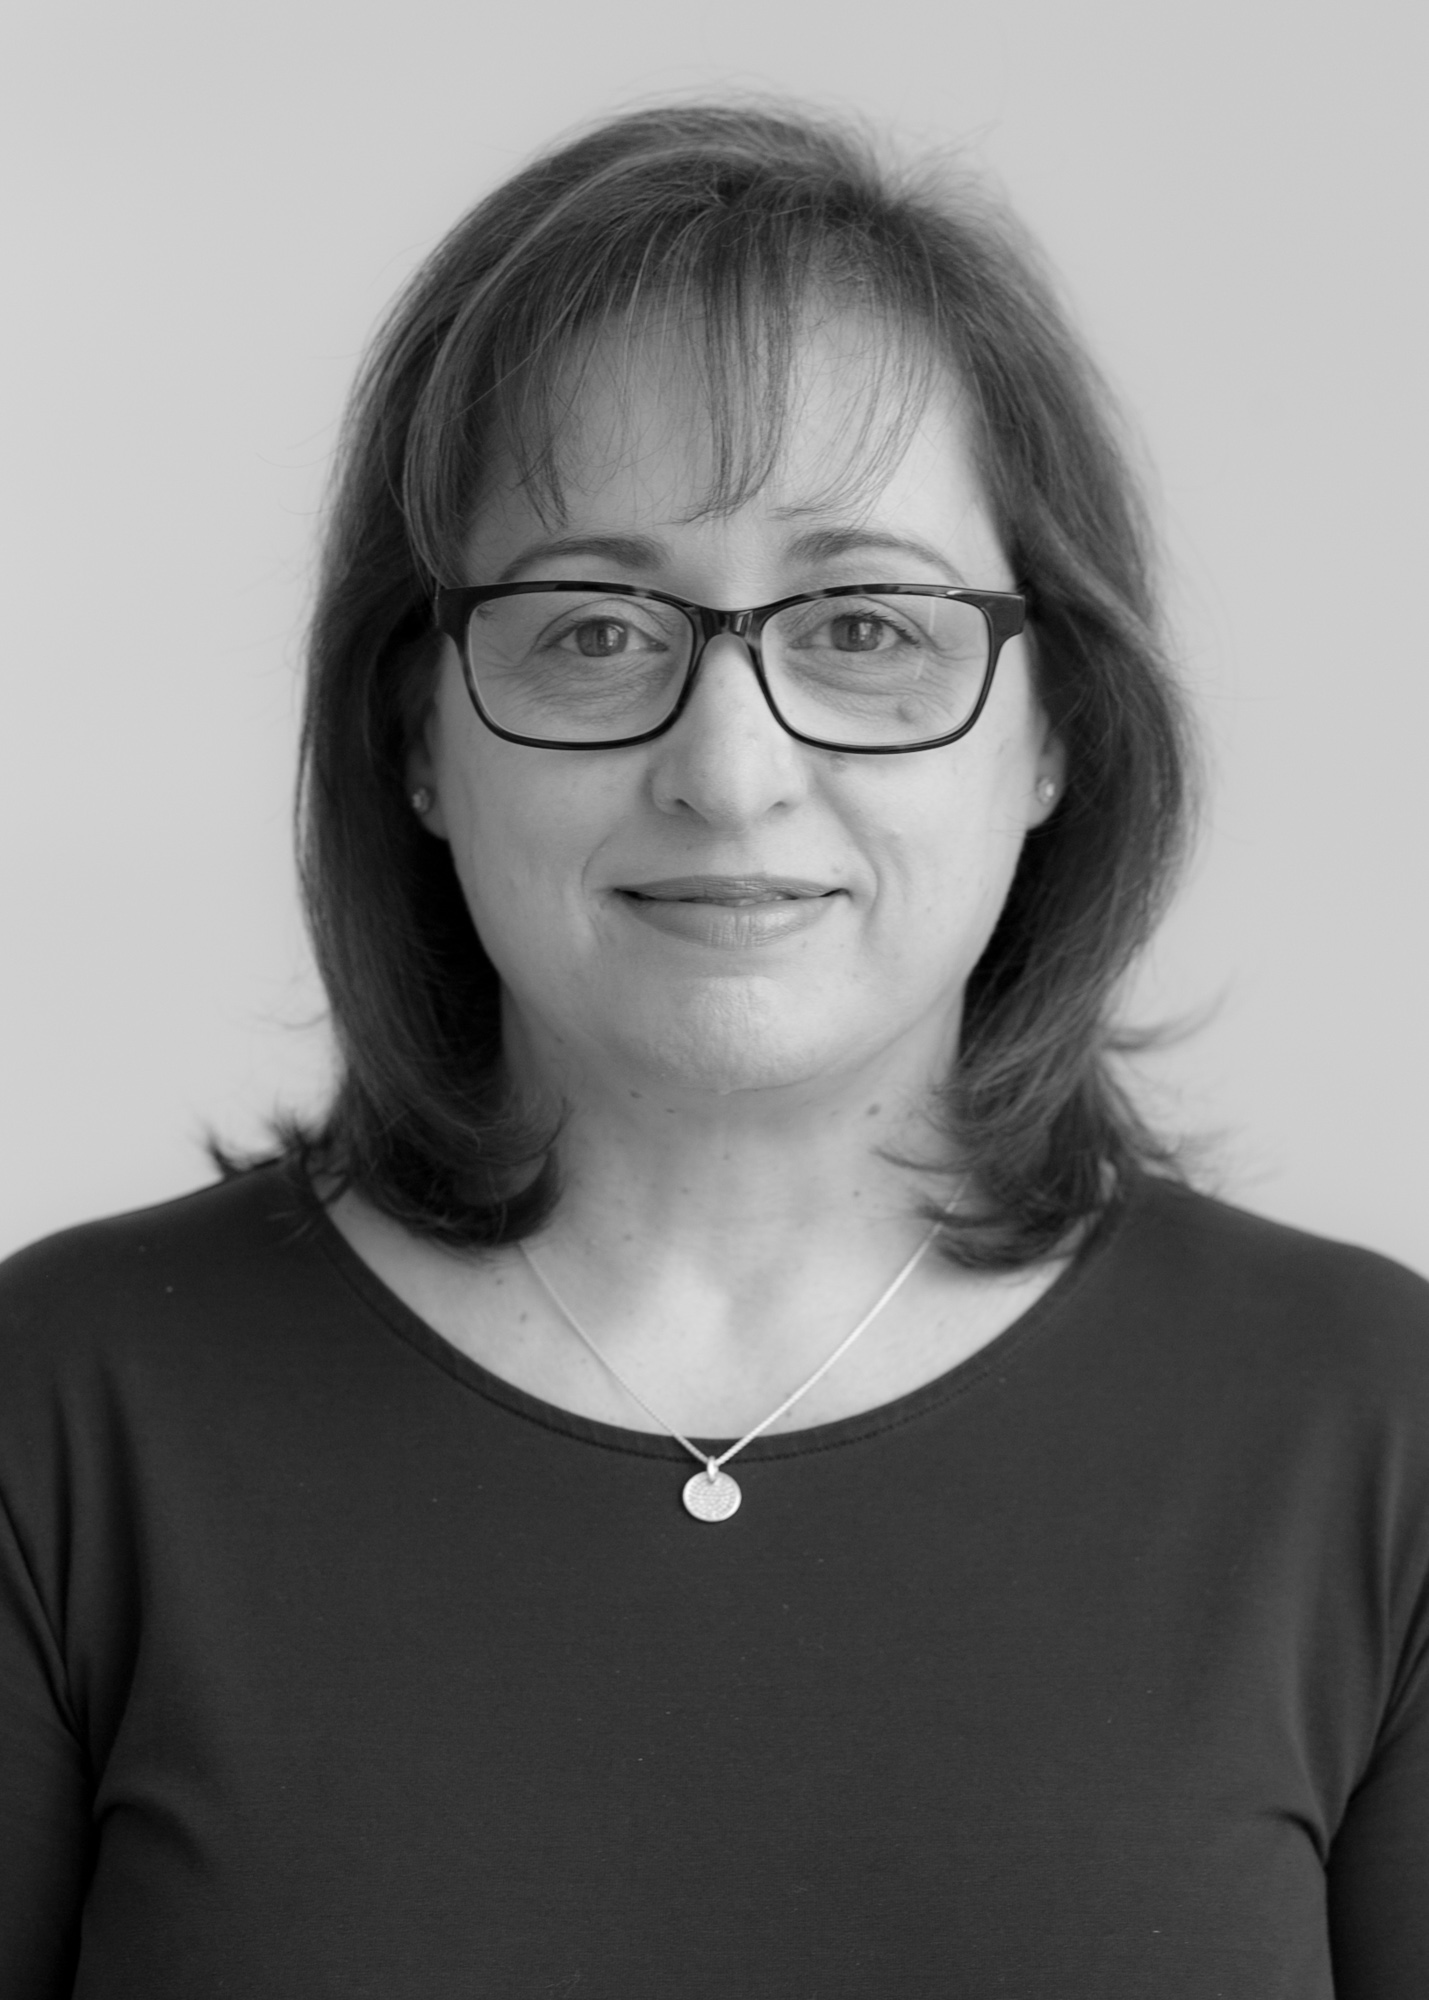 A black and white image of Rose Sinesio, Client Services Manager at Ethical Investment Services.